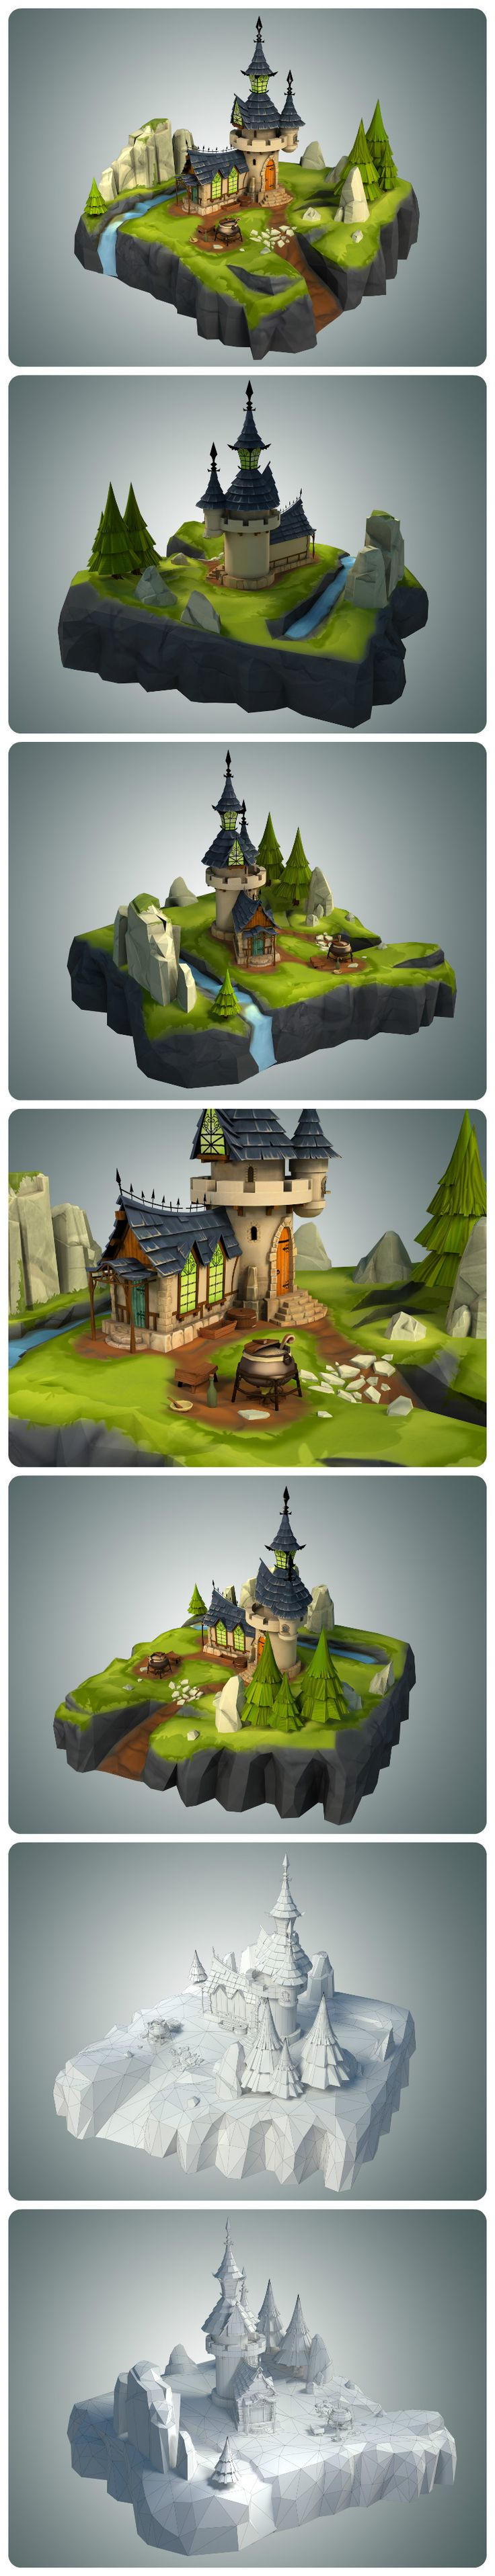 Low Poly Stylized Castle EnvironmentModeled in 3d Studio Max 2014 and Rendered with Vray 3 .Suitable for games, mods or any real time applications. Tested in unity.The 3d model is for sale: - www.cgtrader.com -